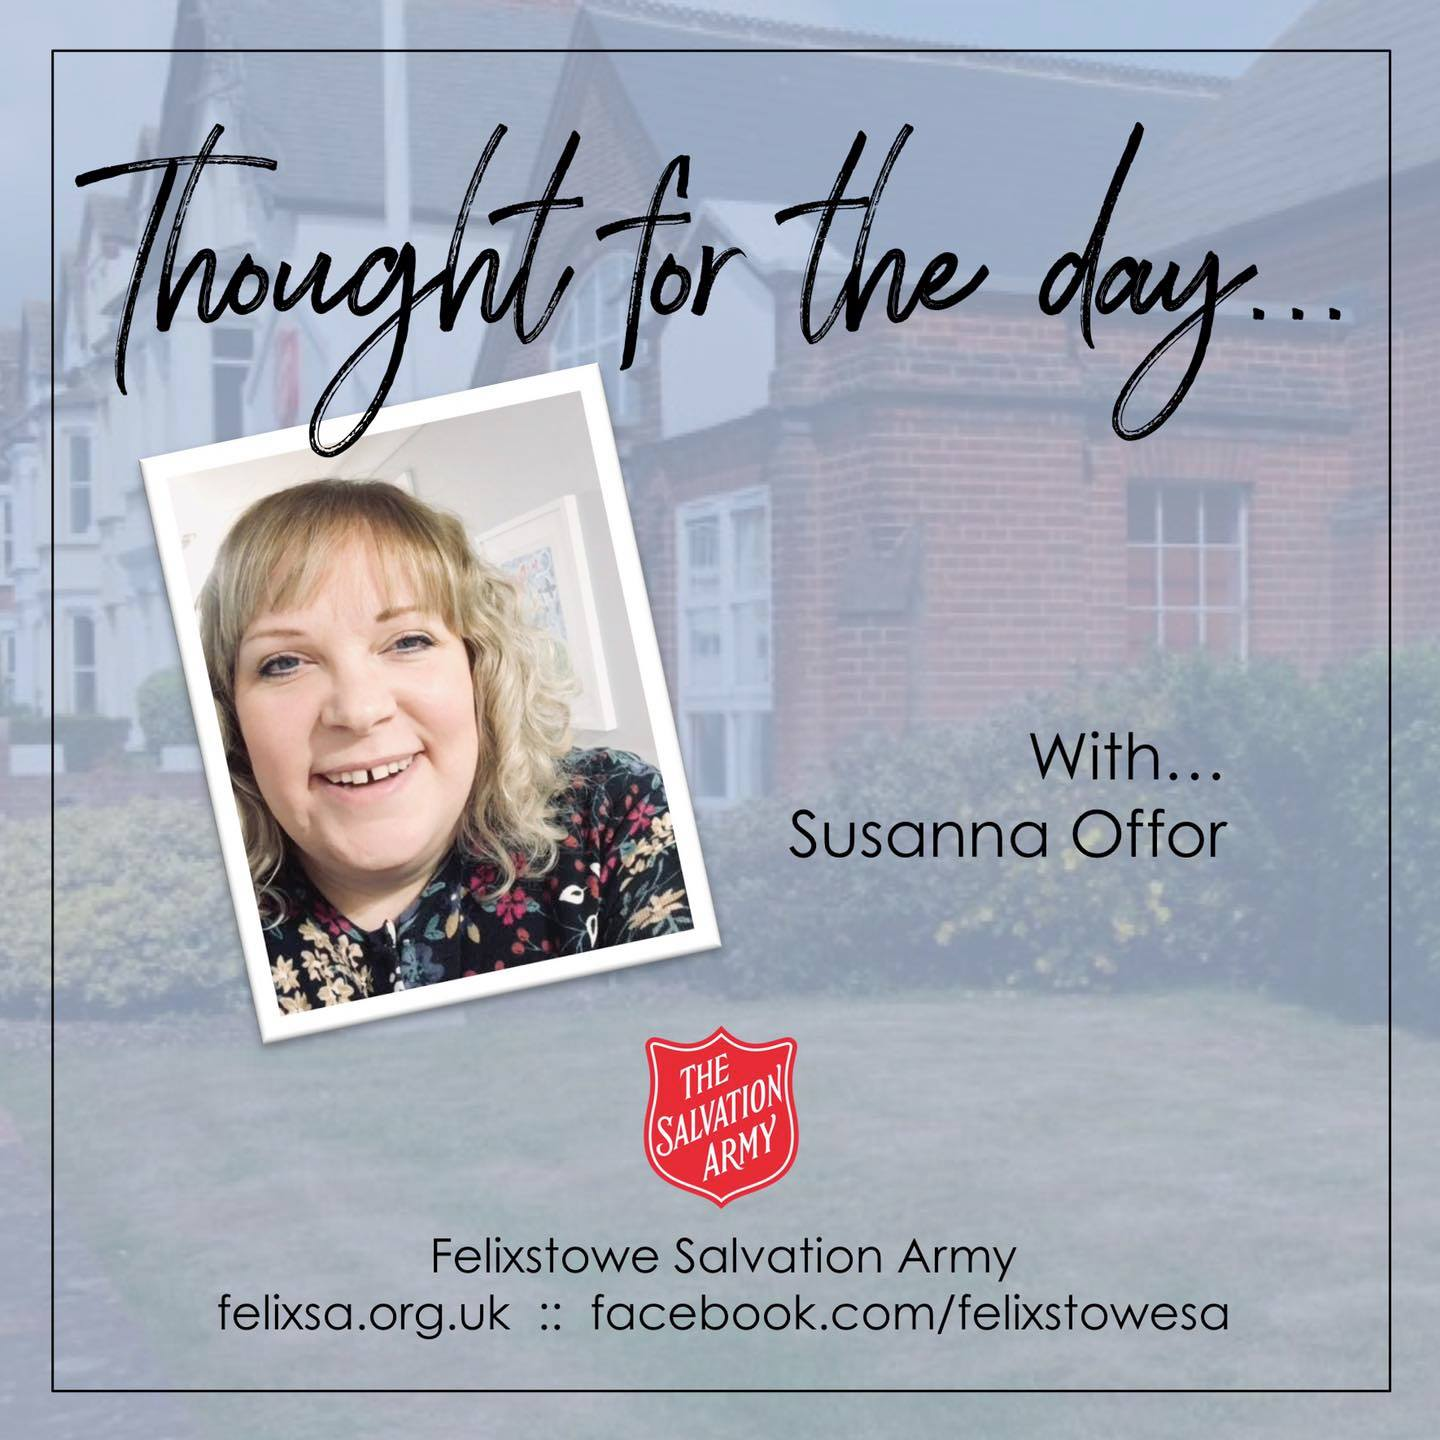 Thought for the Day with Susanna Offor